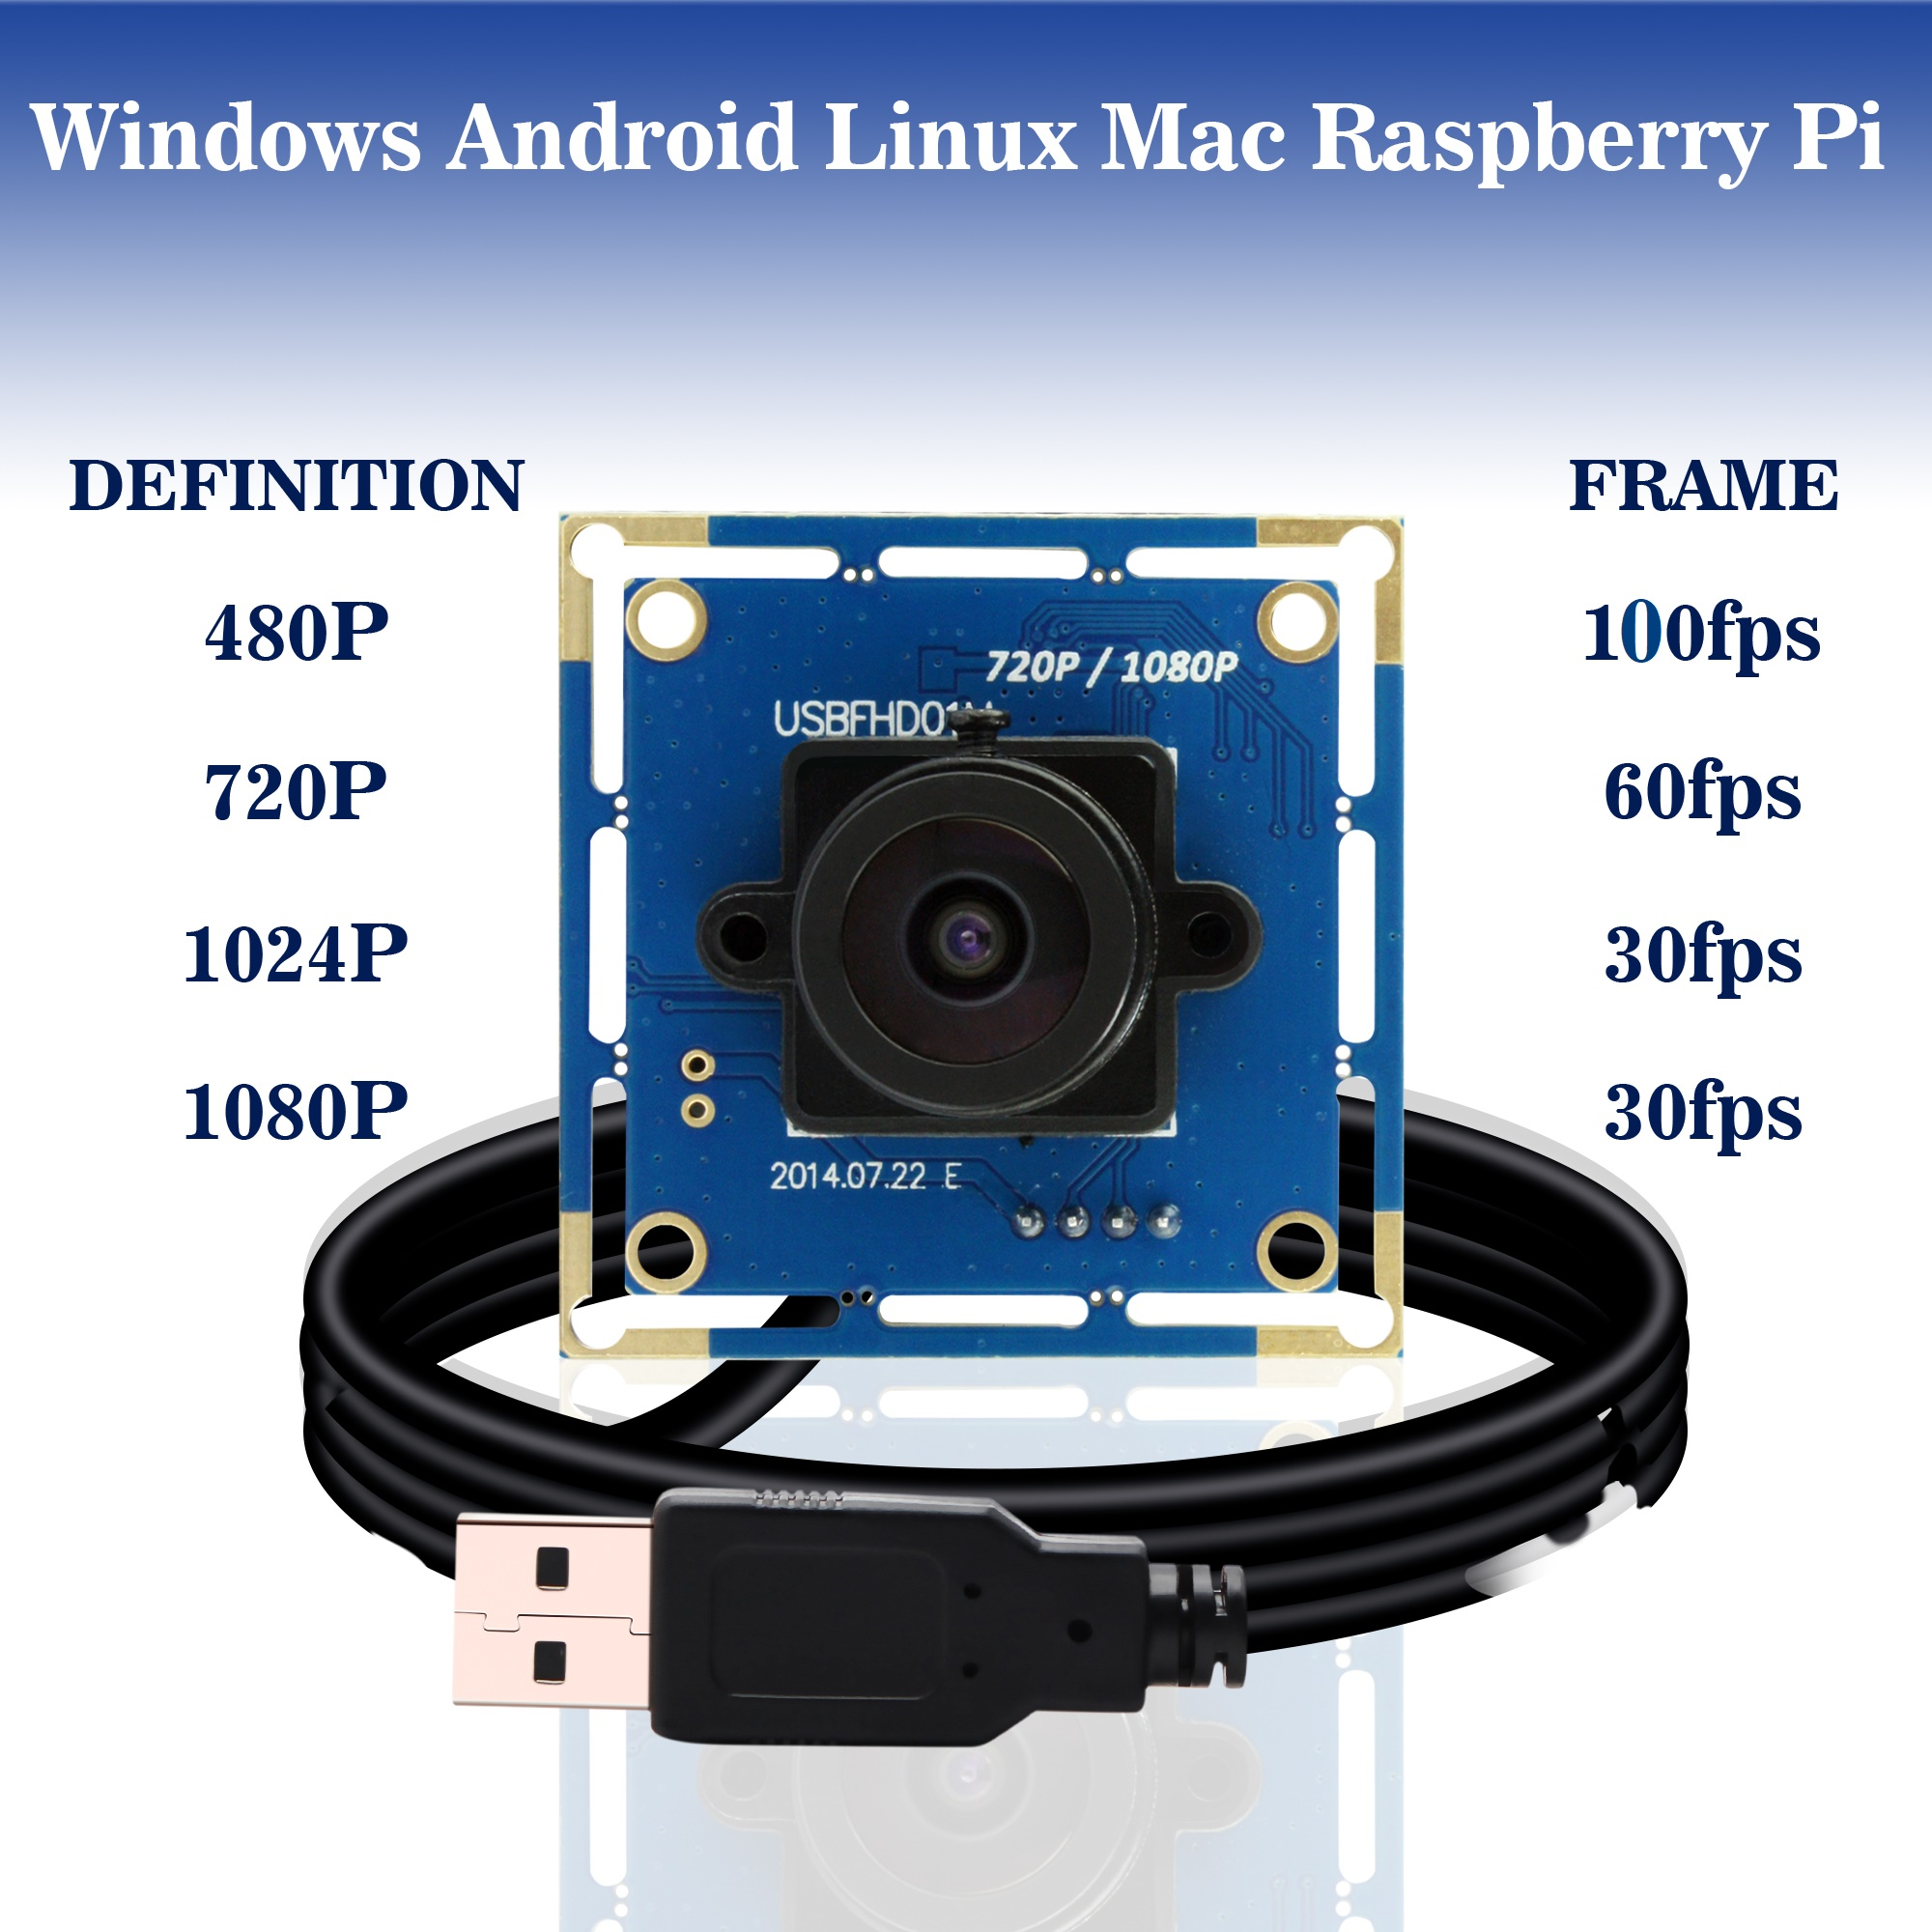 1080p Πλήρης Hd MJPEG 30fps / 60fps / 100fps Υψηλής ταχύτητας CMOS OV2710 Wide Angle Mini CCTV Android Linux UVC Webcam Μονάδα κάμερας USB